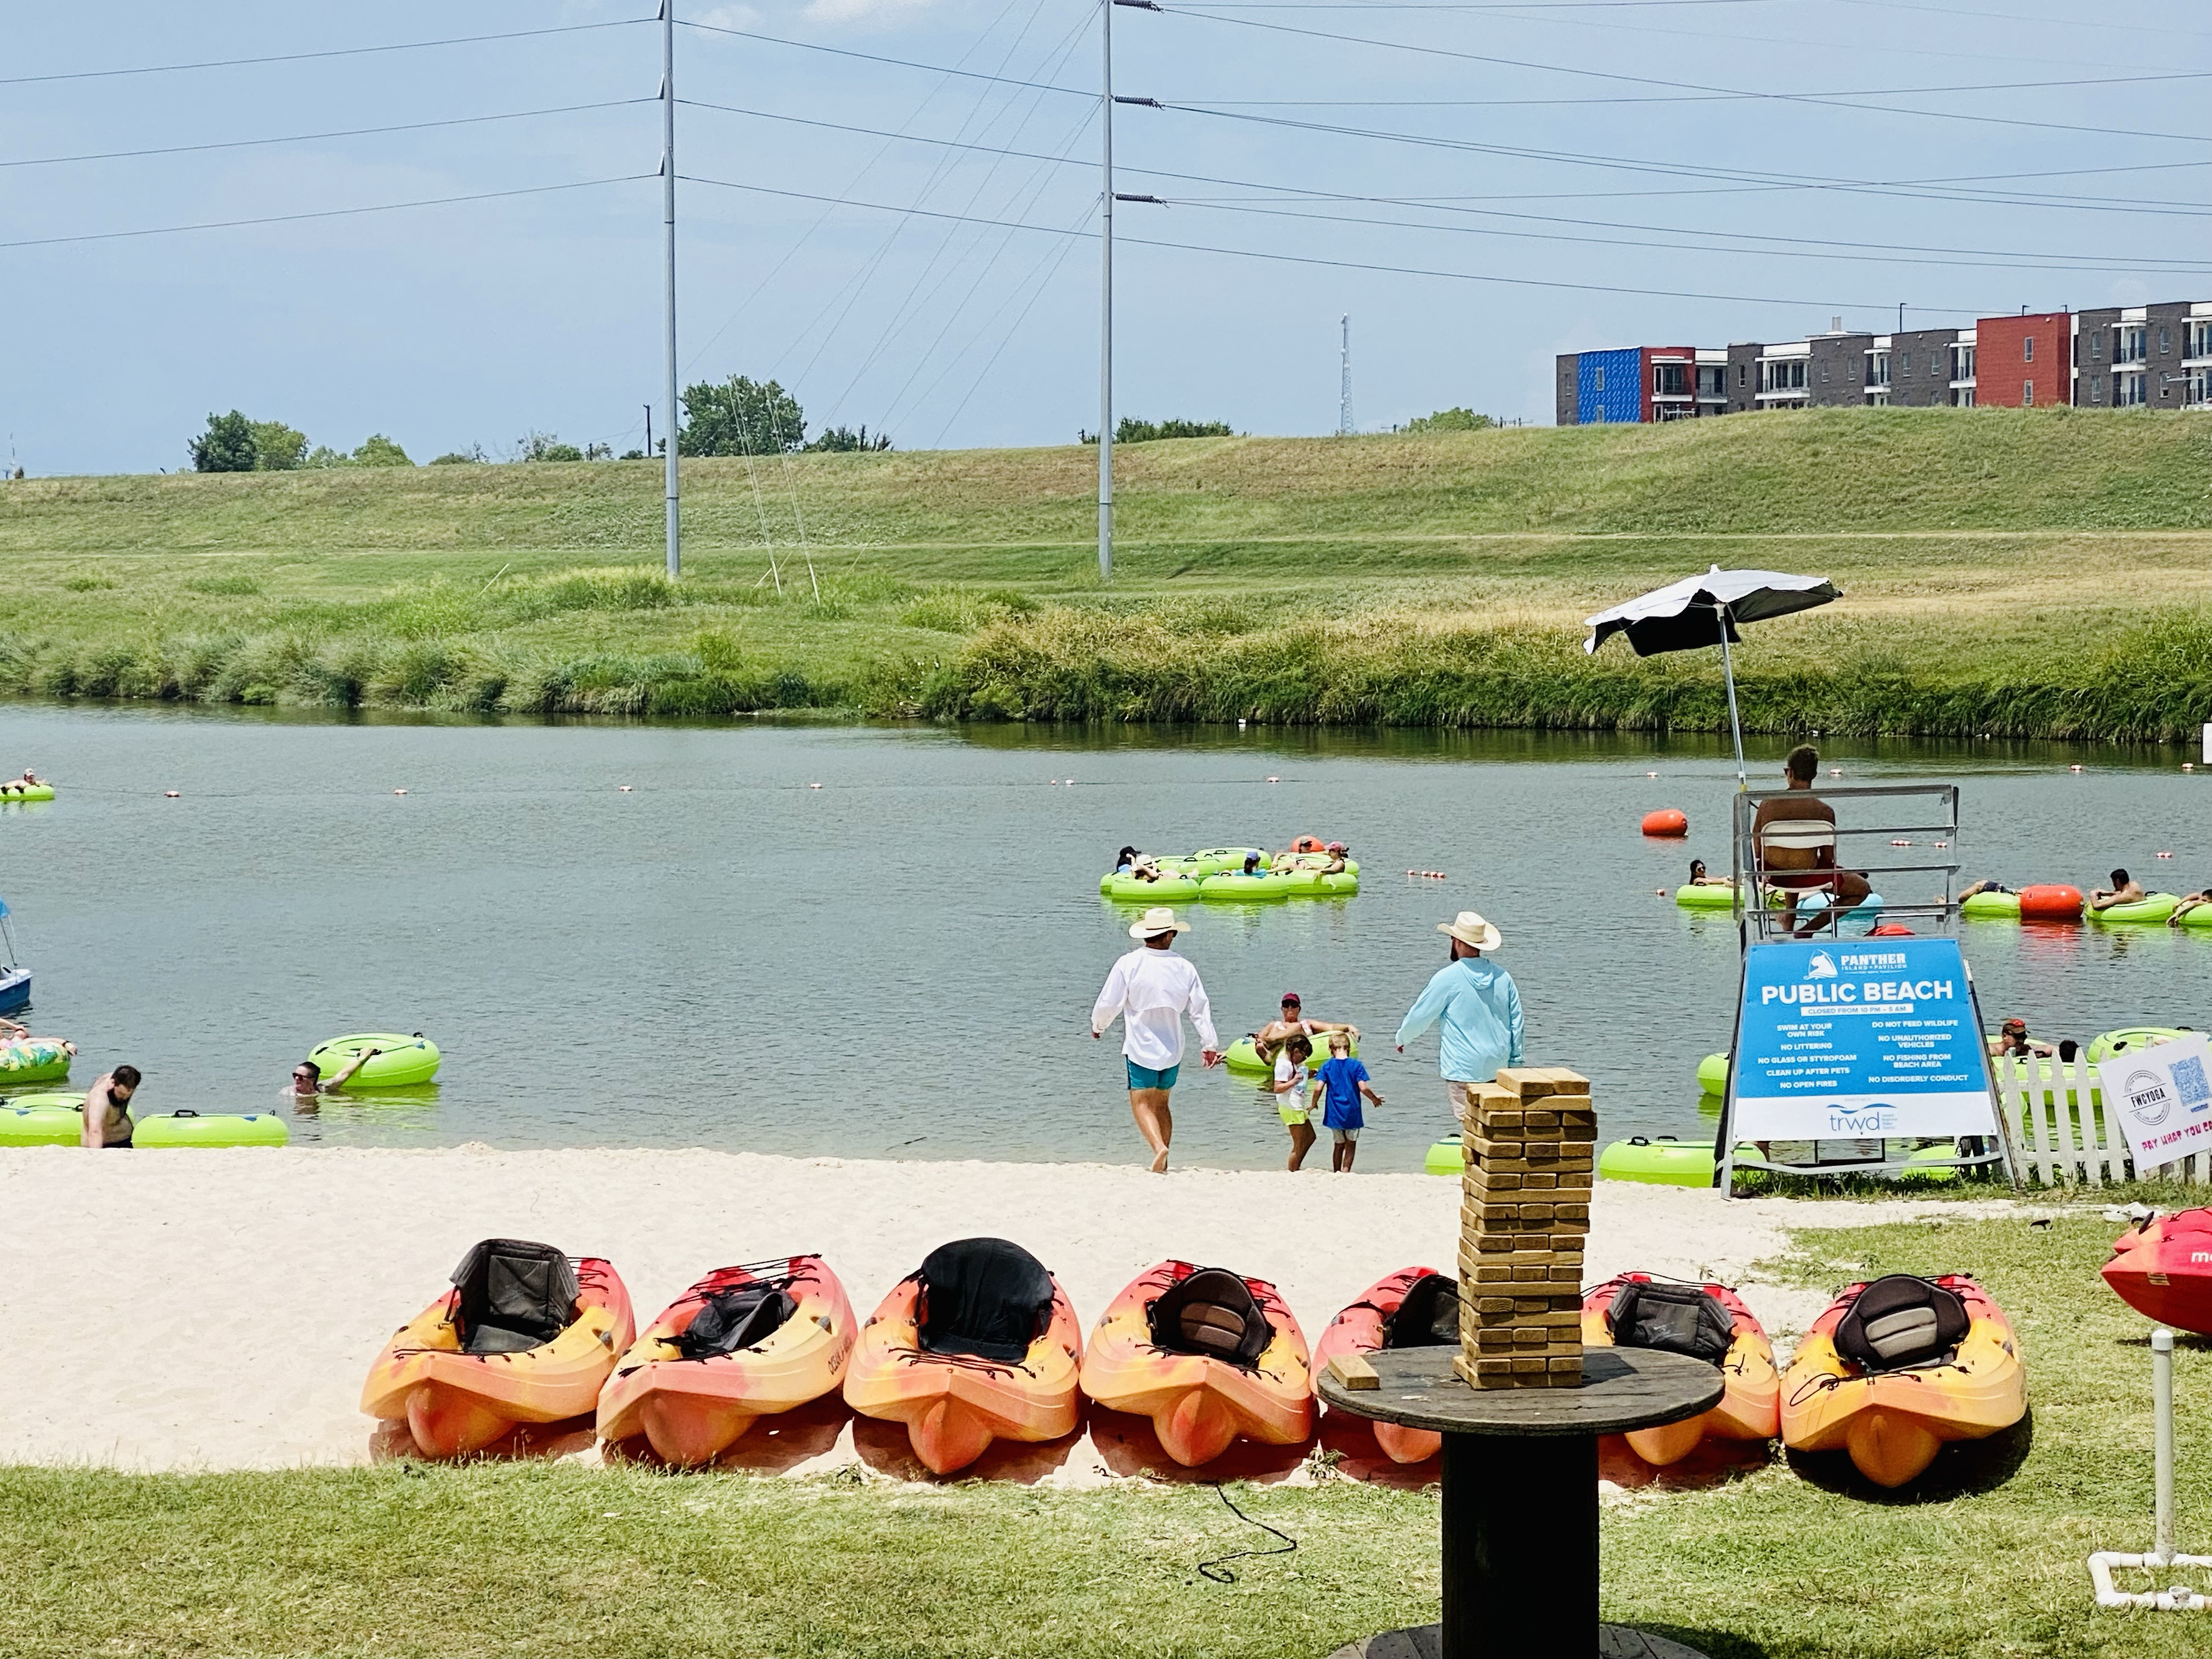 Sunday Funday at Panther Island Pavilion on the Trinity River in Fort Worth